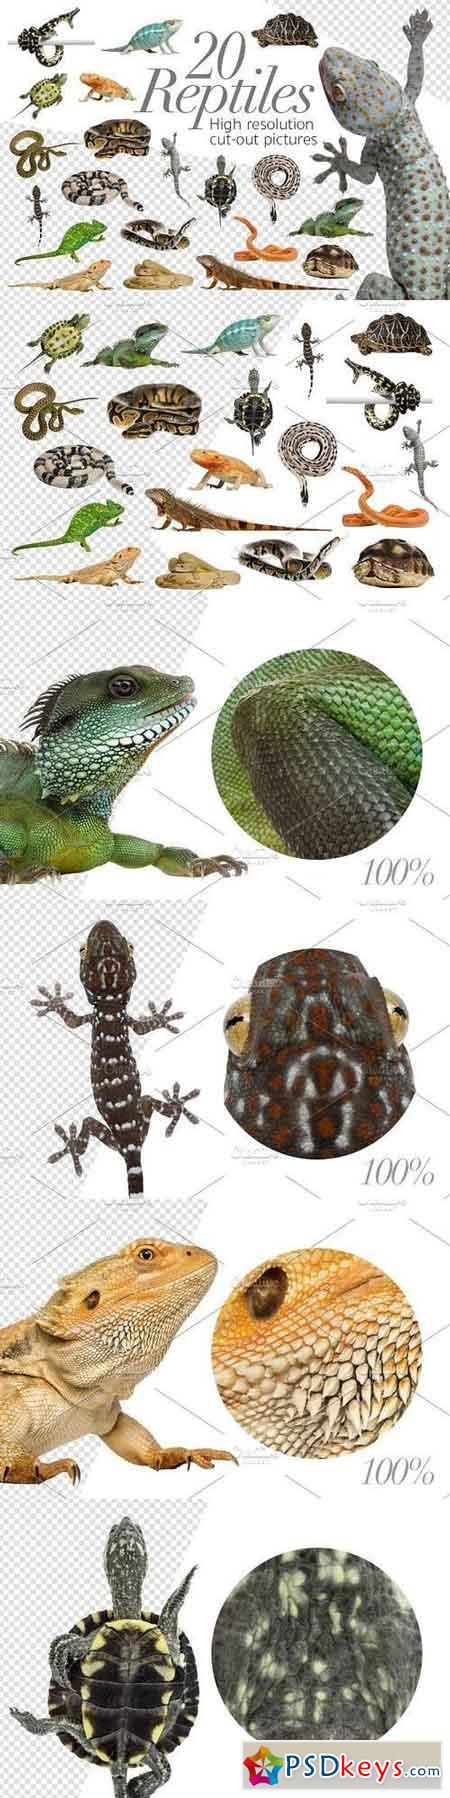 20 Reptiles - Cut-out Pictures 1333269